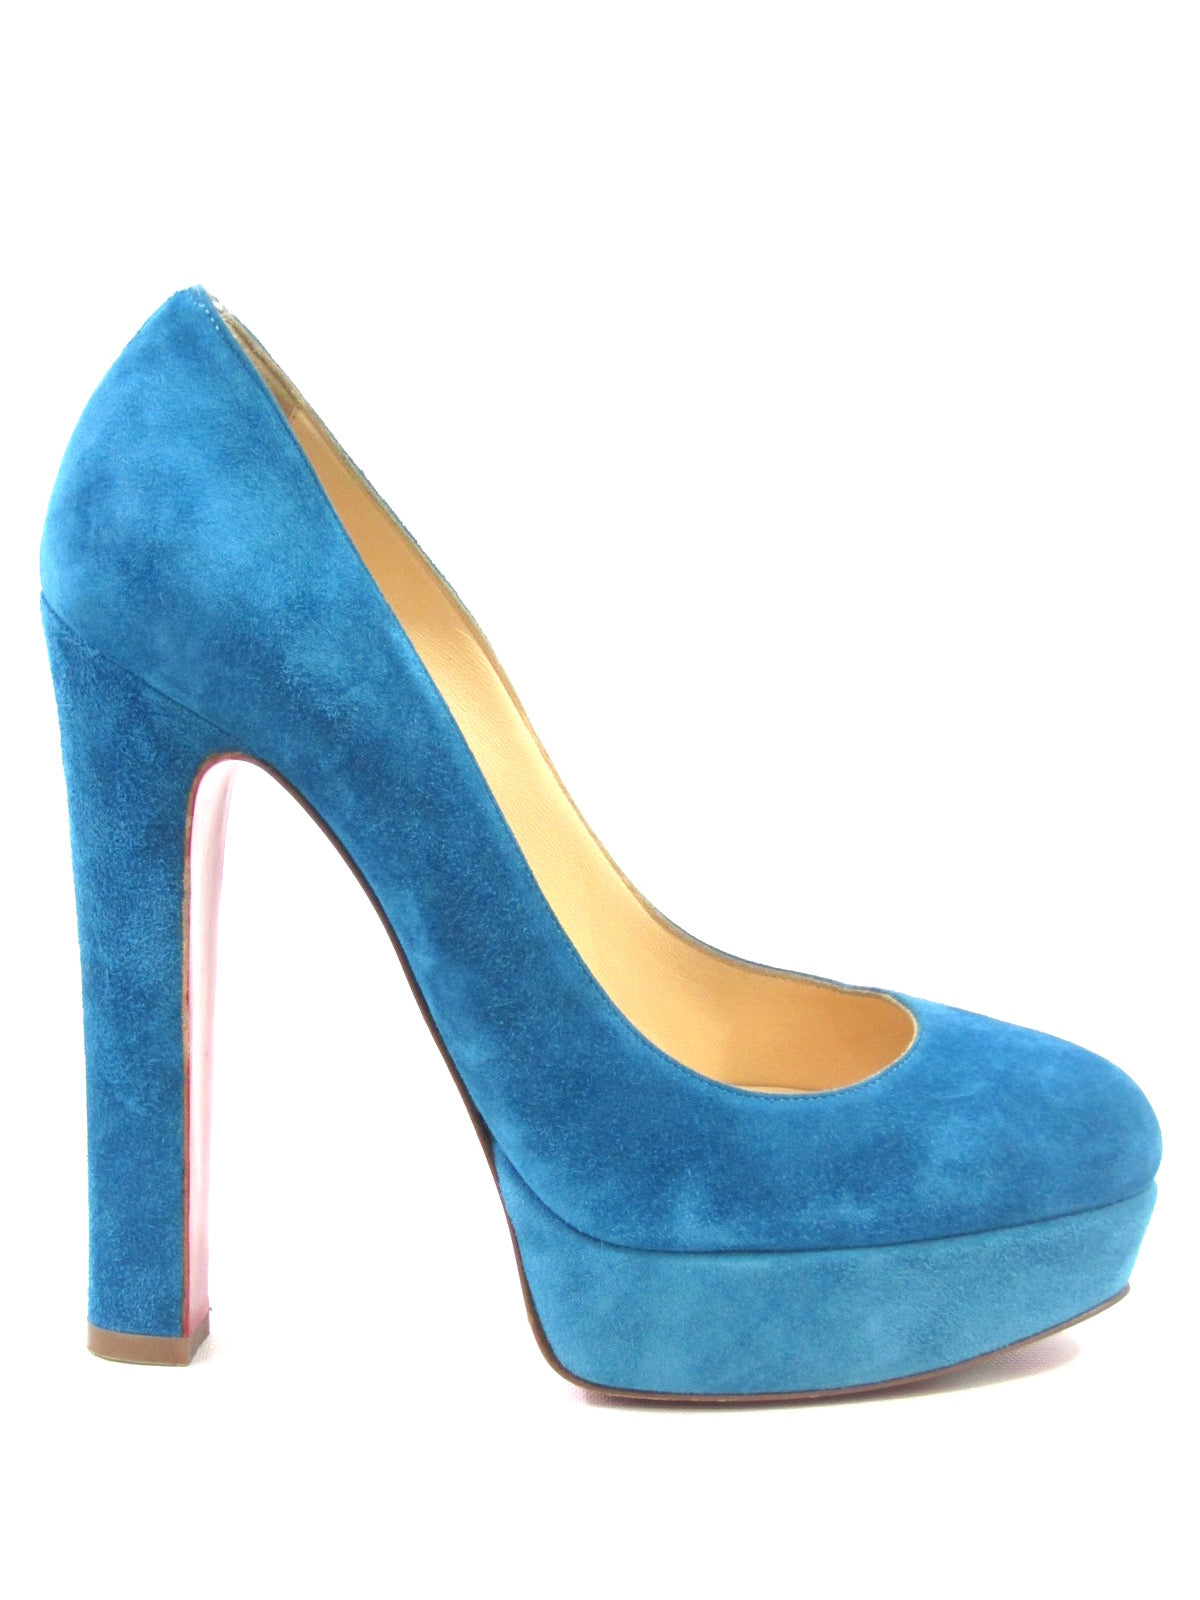 67fe37cc843 CHRISTIAN LOUBOUTIN Women Light Blue Suede Bibi Platform Pumps Size 38